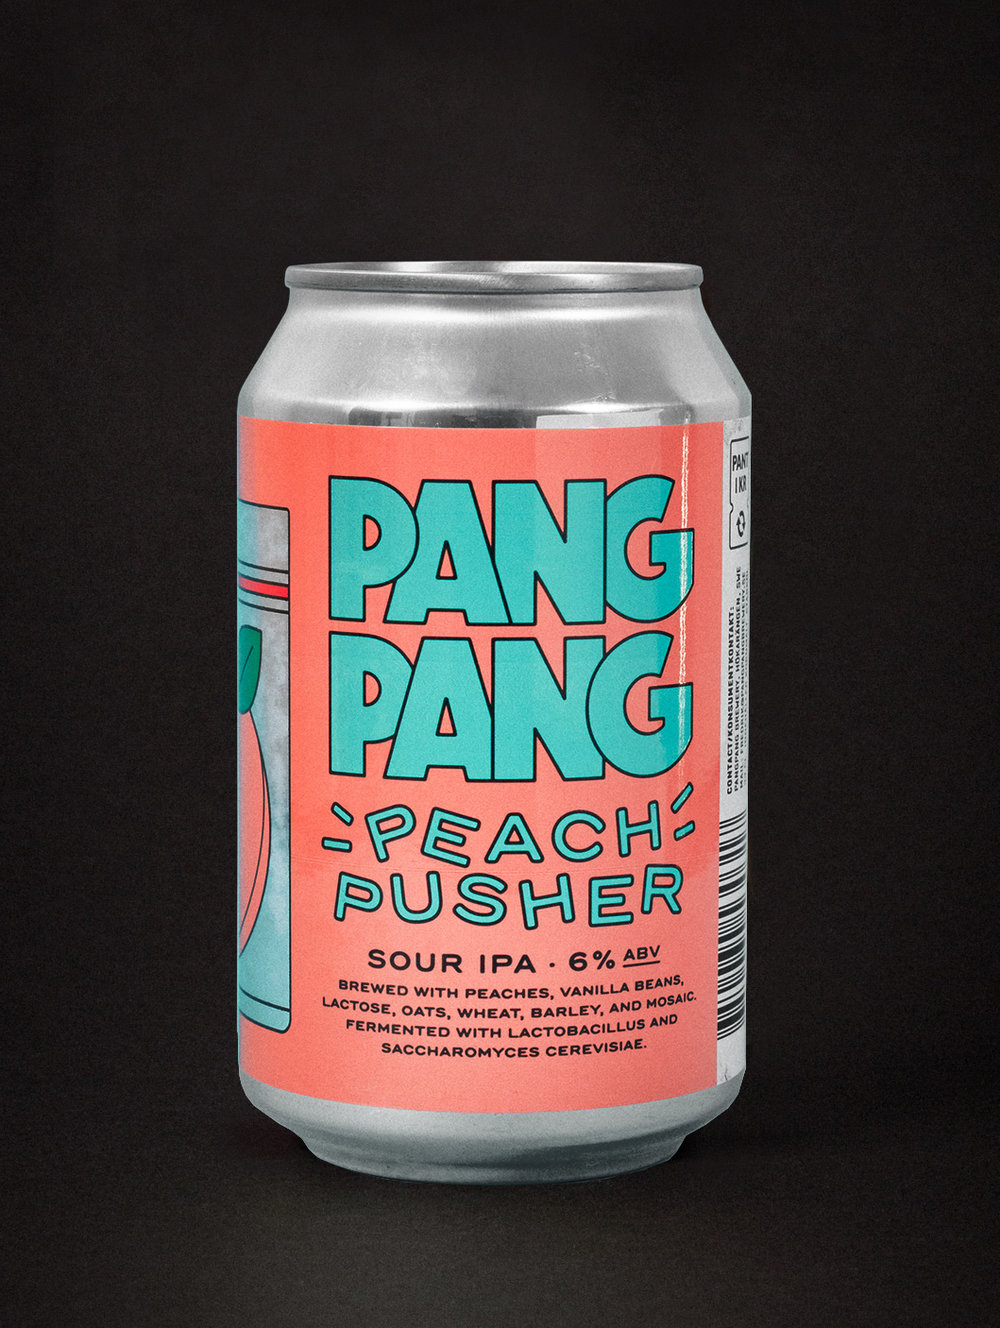 PangPang Peach Pusher  Sour IPA brewed with peaches and vanilla beans. 6,0% · 33 centiliter